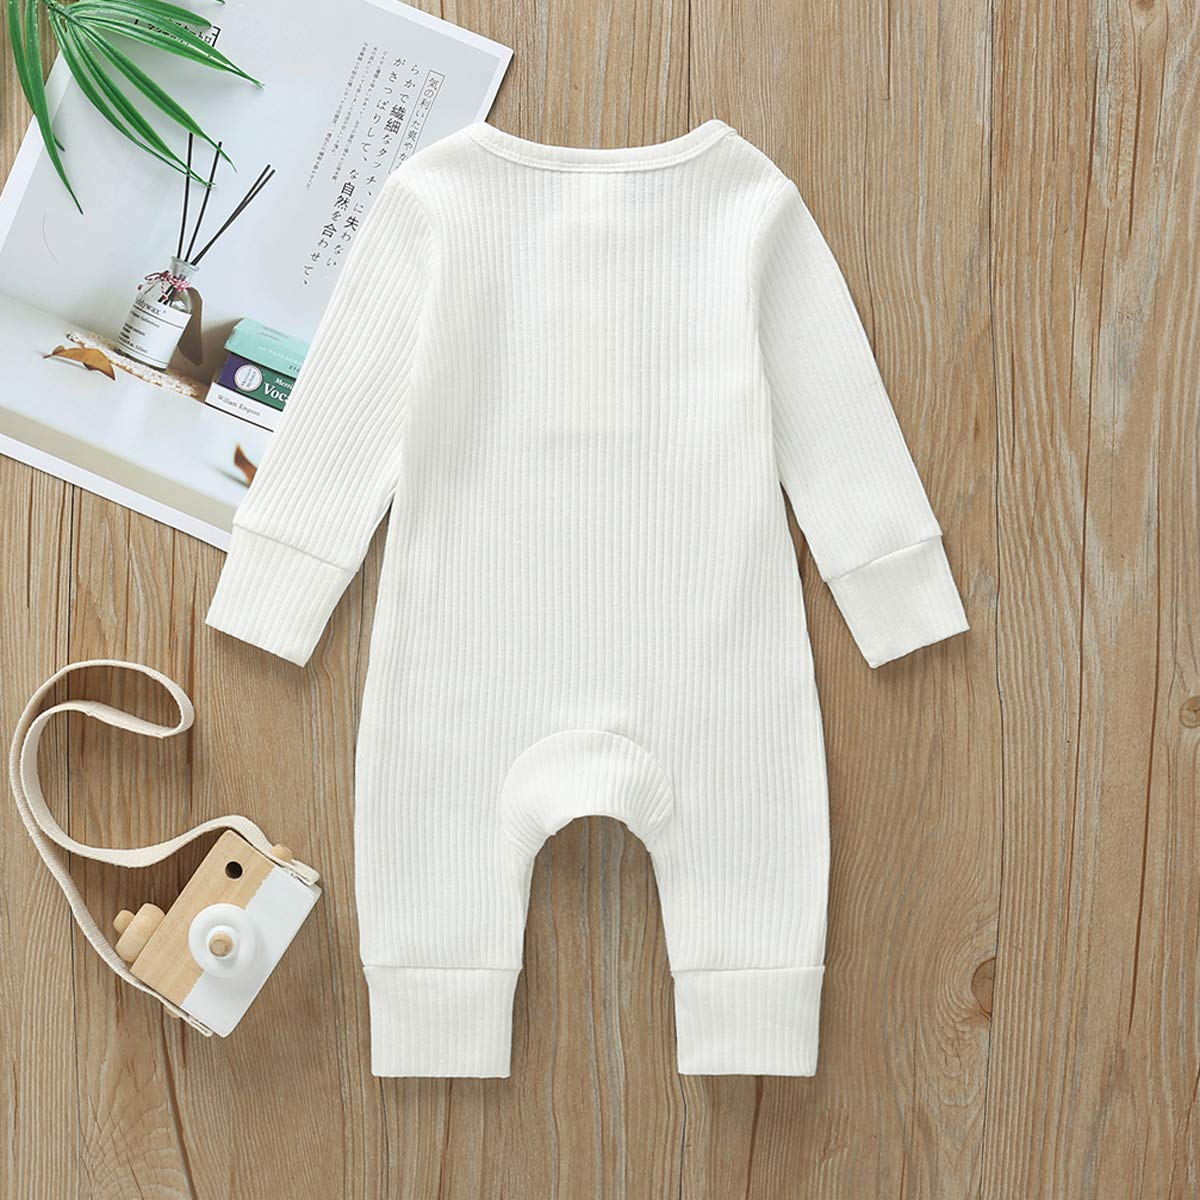 TAIYCYXGAN Unisex Baby Boys Girls Winter Fleece Rompers Infant Warm Bodysuits Hoodies Toddlers Jumpsuit